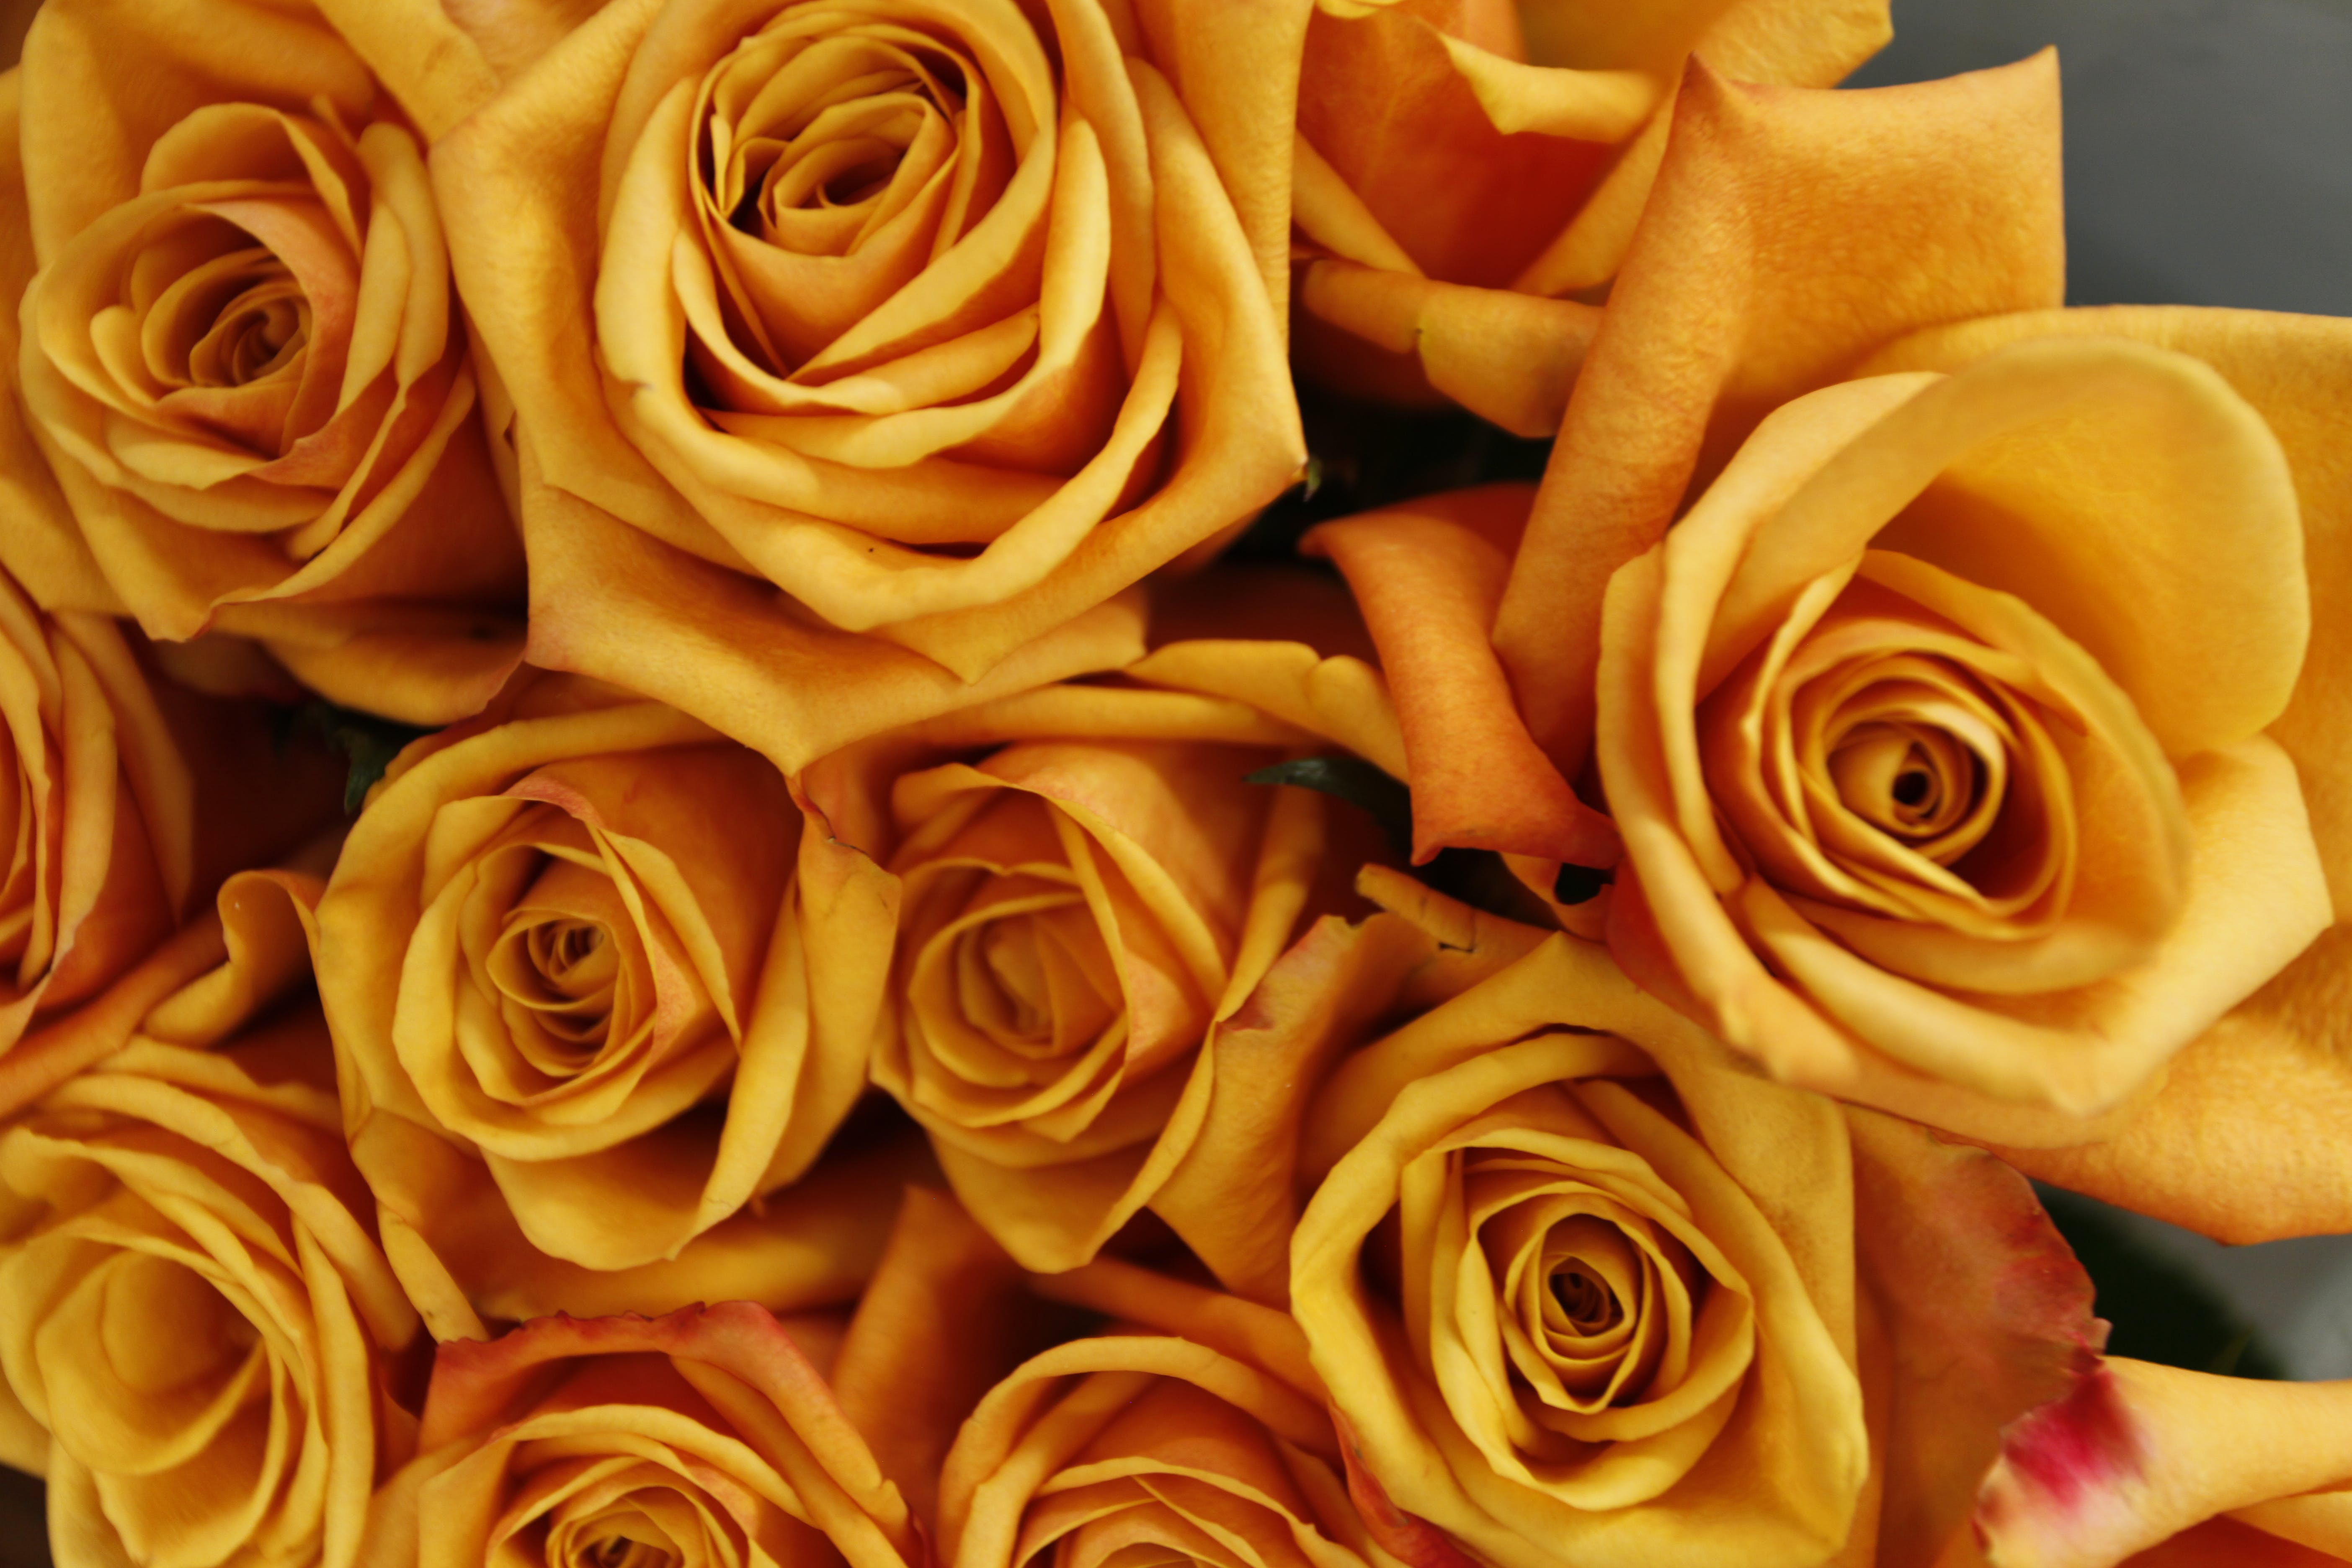 Free stock photo of flowers, macro, roses, yellow roses